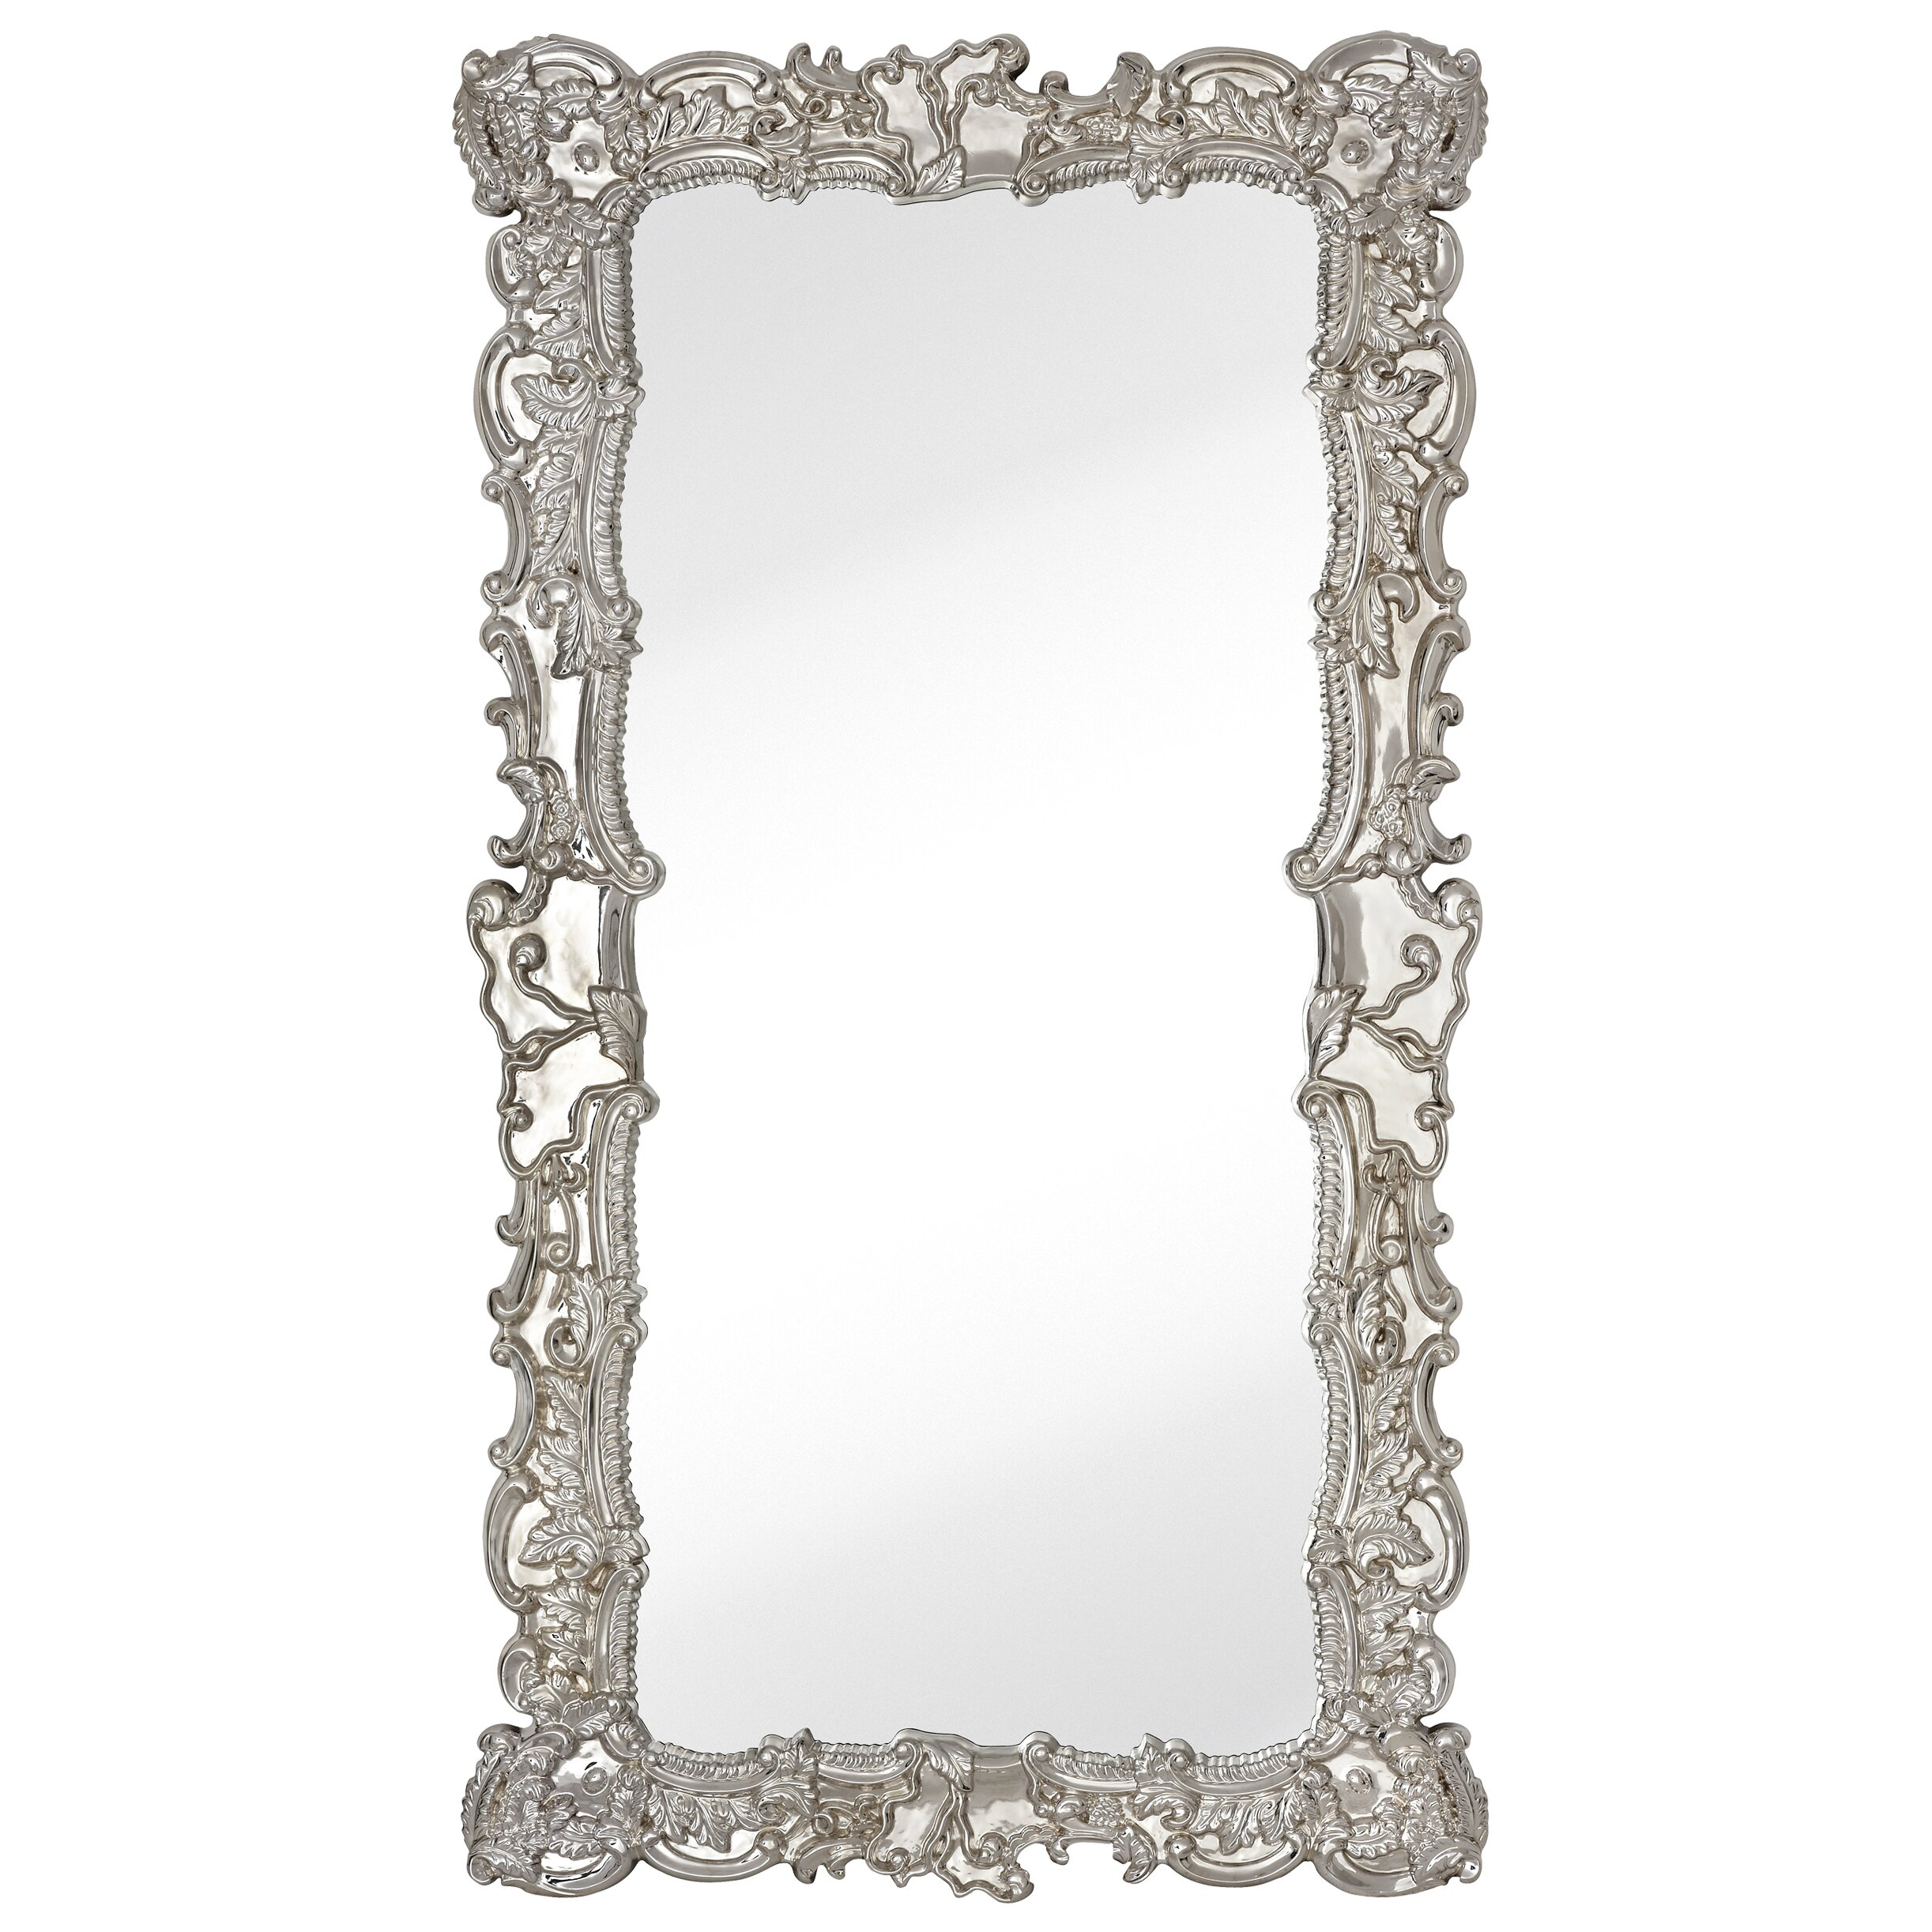 Majestic mirror extra large decorative mirror reviews for Extra large mirrors